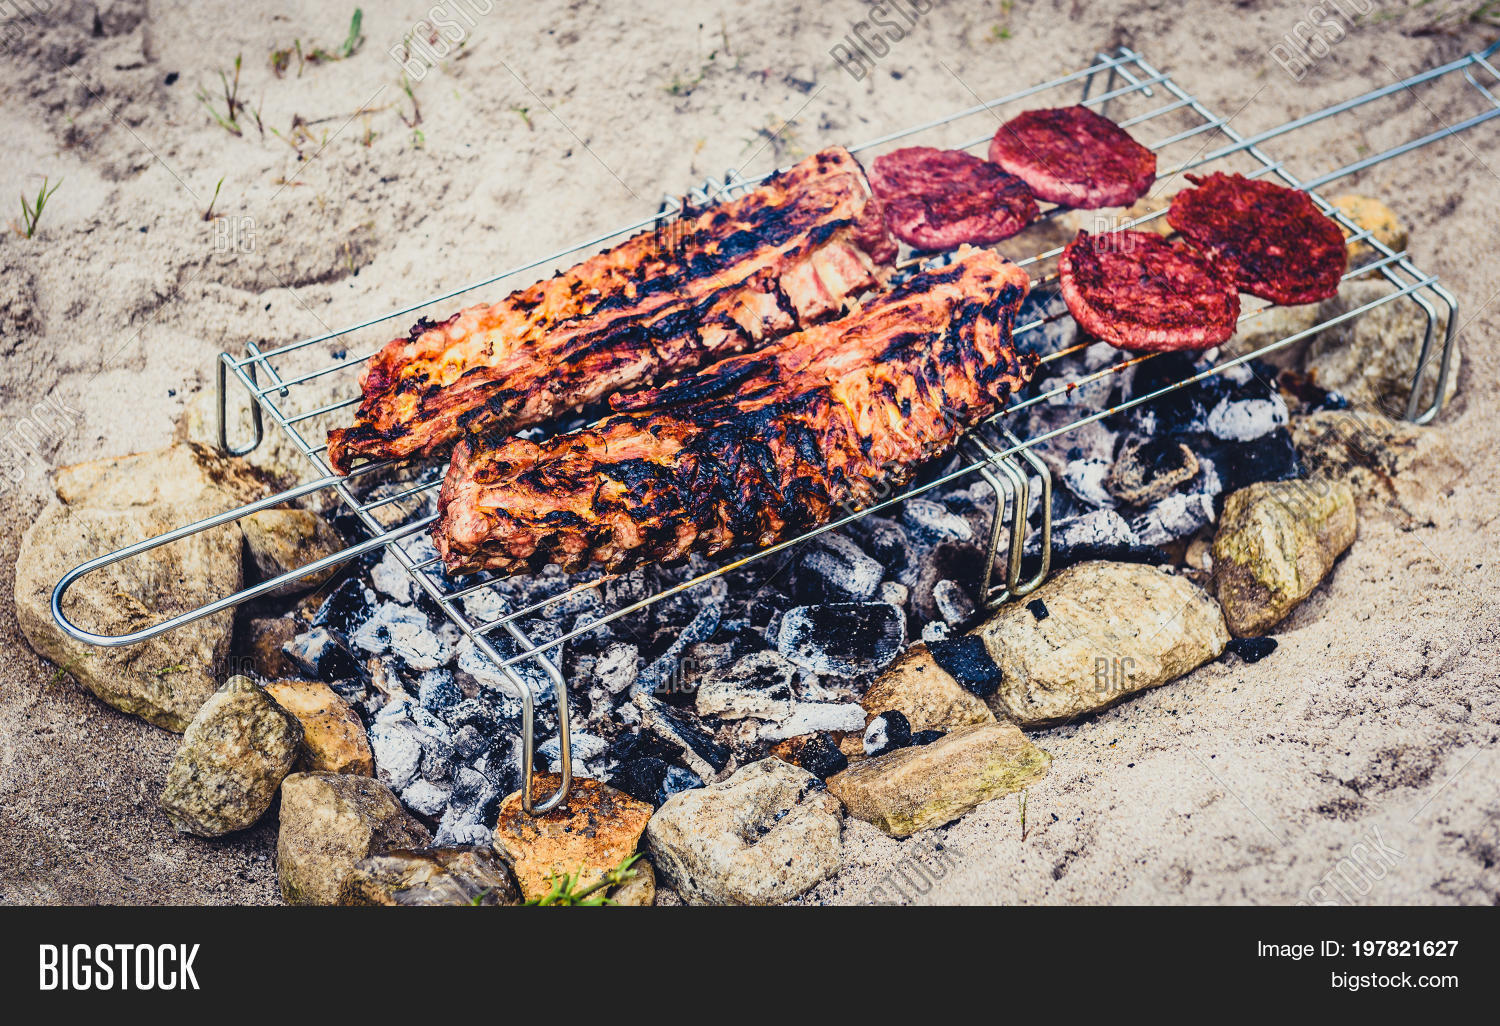 Pork Ribs Burgers On Image & Photo (Free Trial) | Bigstock